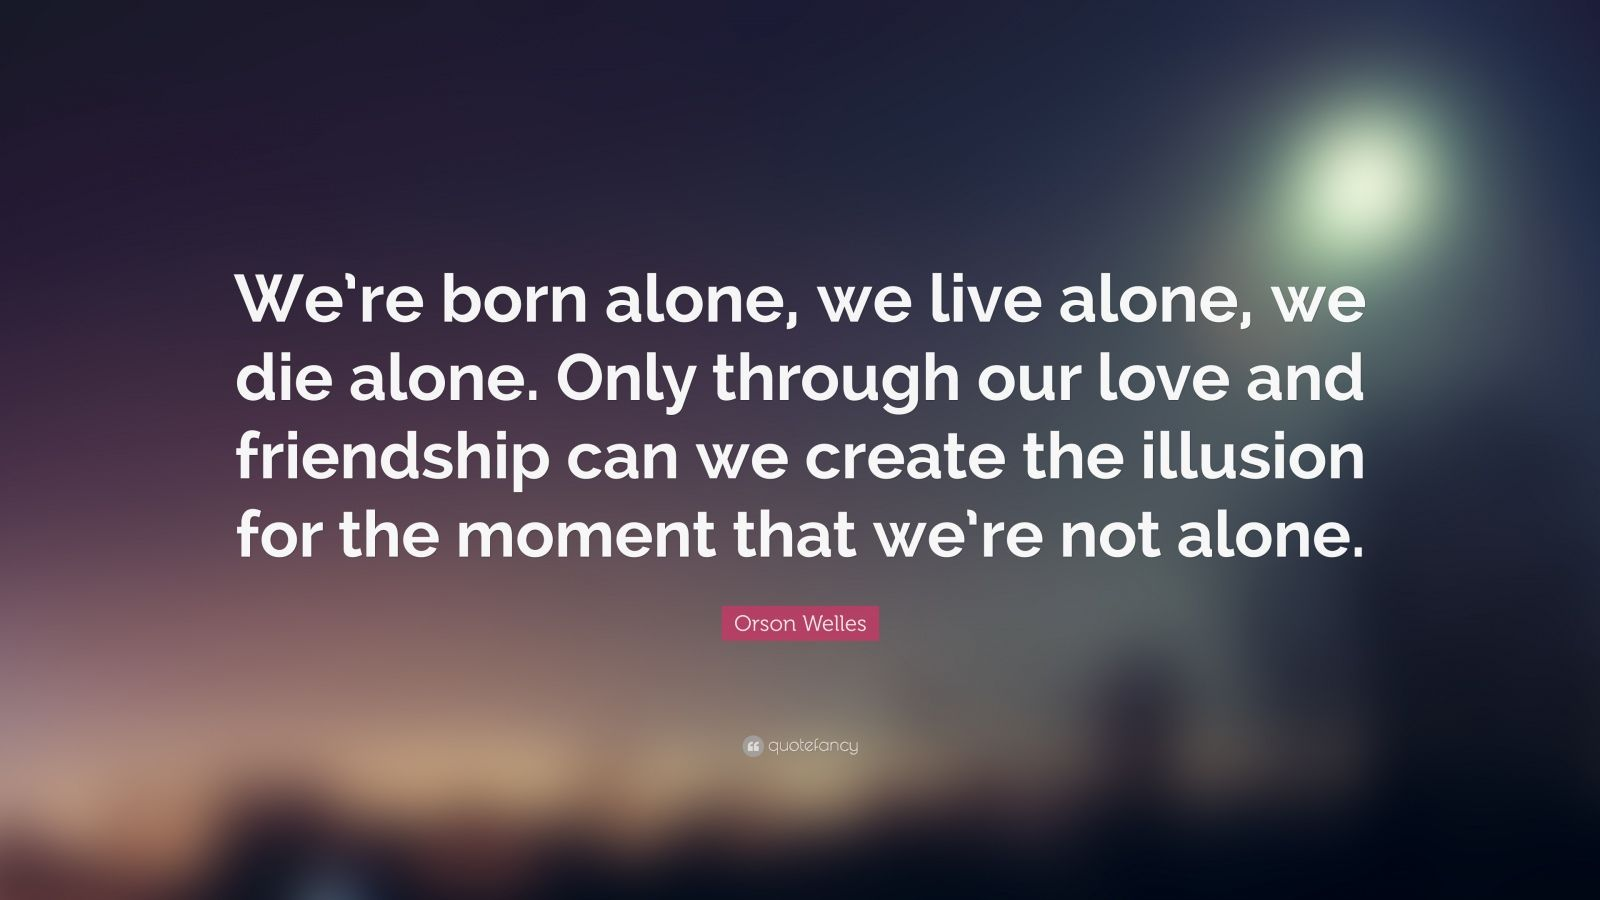 """Orson Welles Quote: """"We're born alone, we live alone, we die alone. Only through our love and friendship can we create the illusion for the moment that we're not alone."""""""